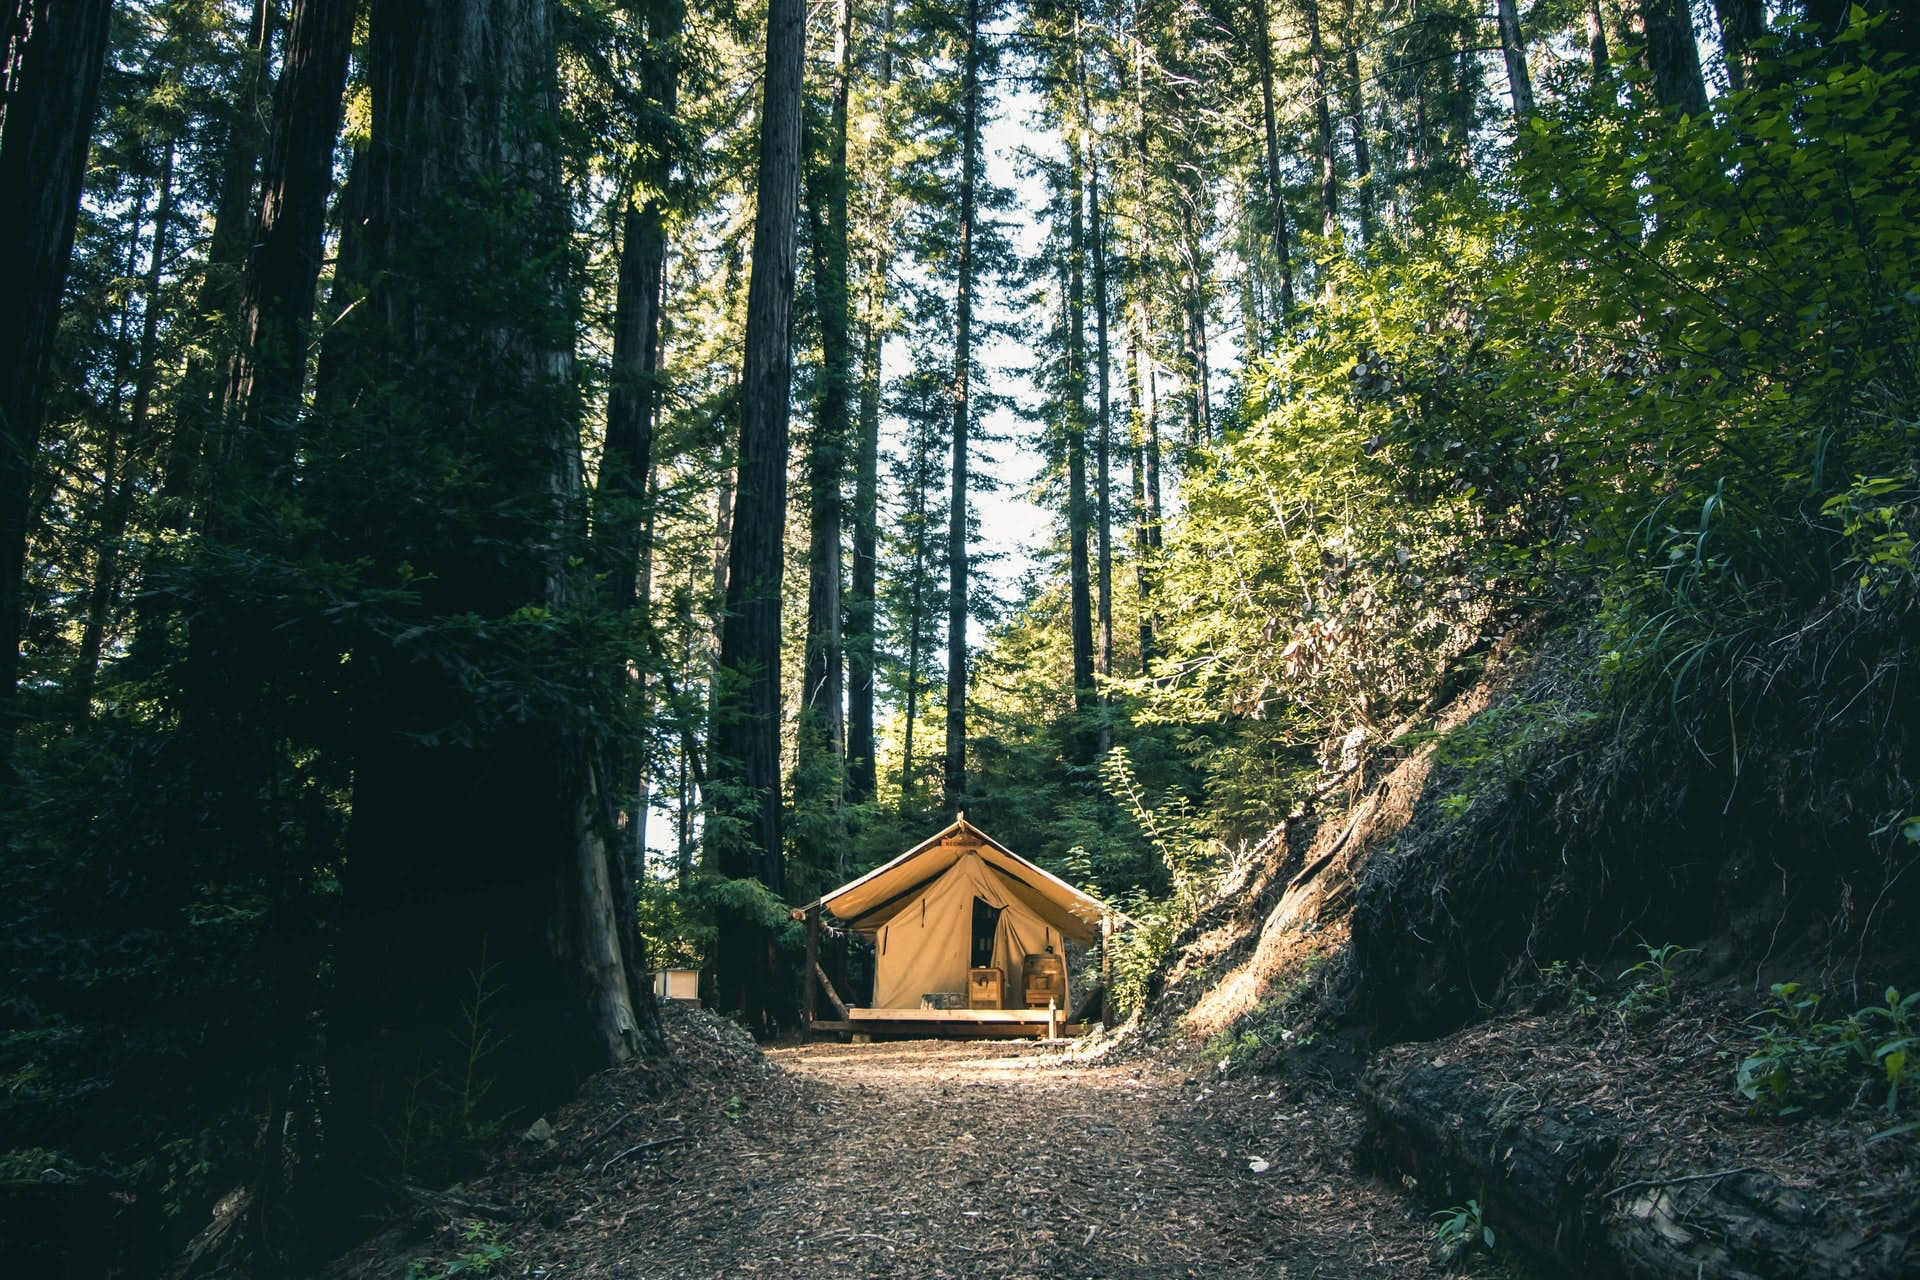 Why is glamping better than camping?